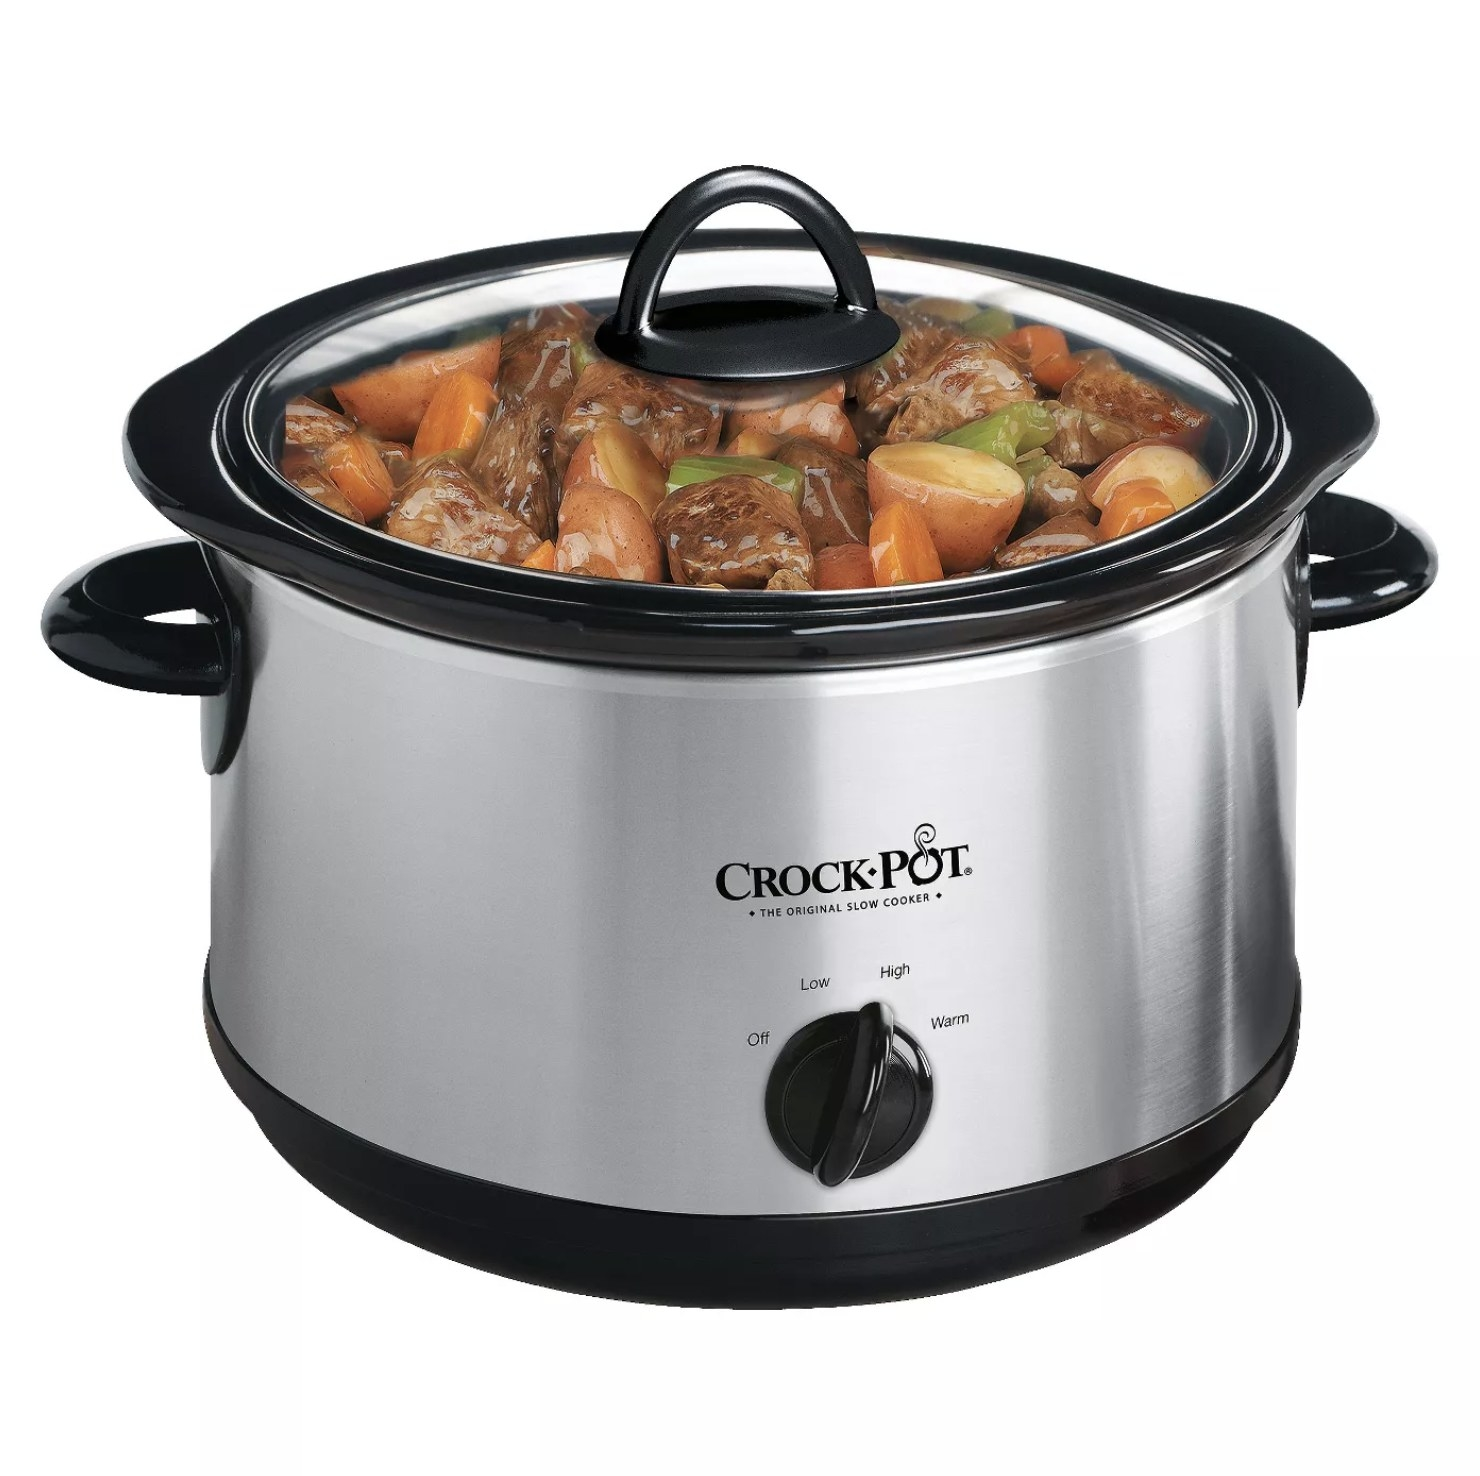 A Crock-Pot 4.5qt manual slow cooker with beef stew inside in